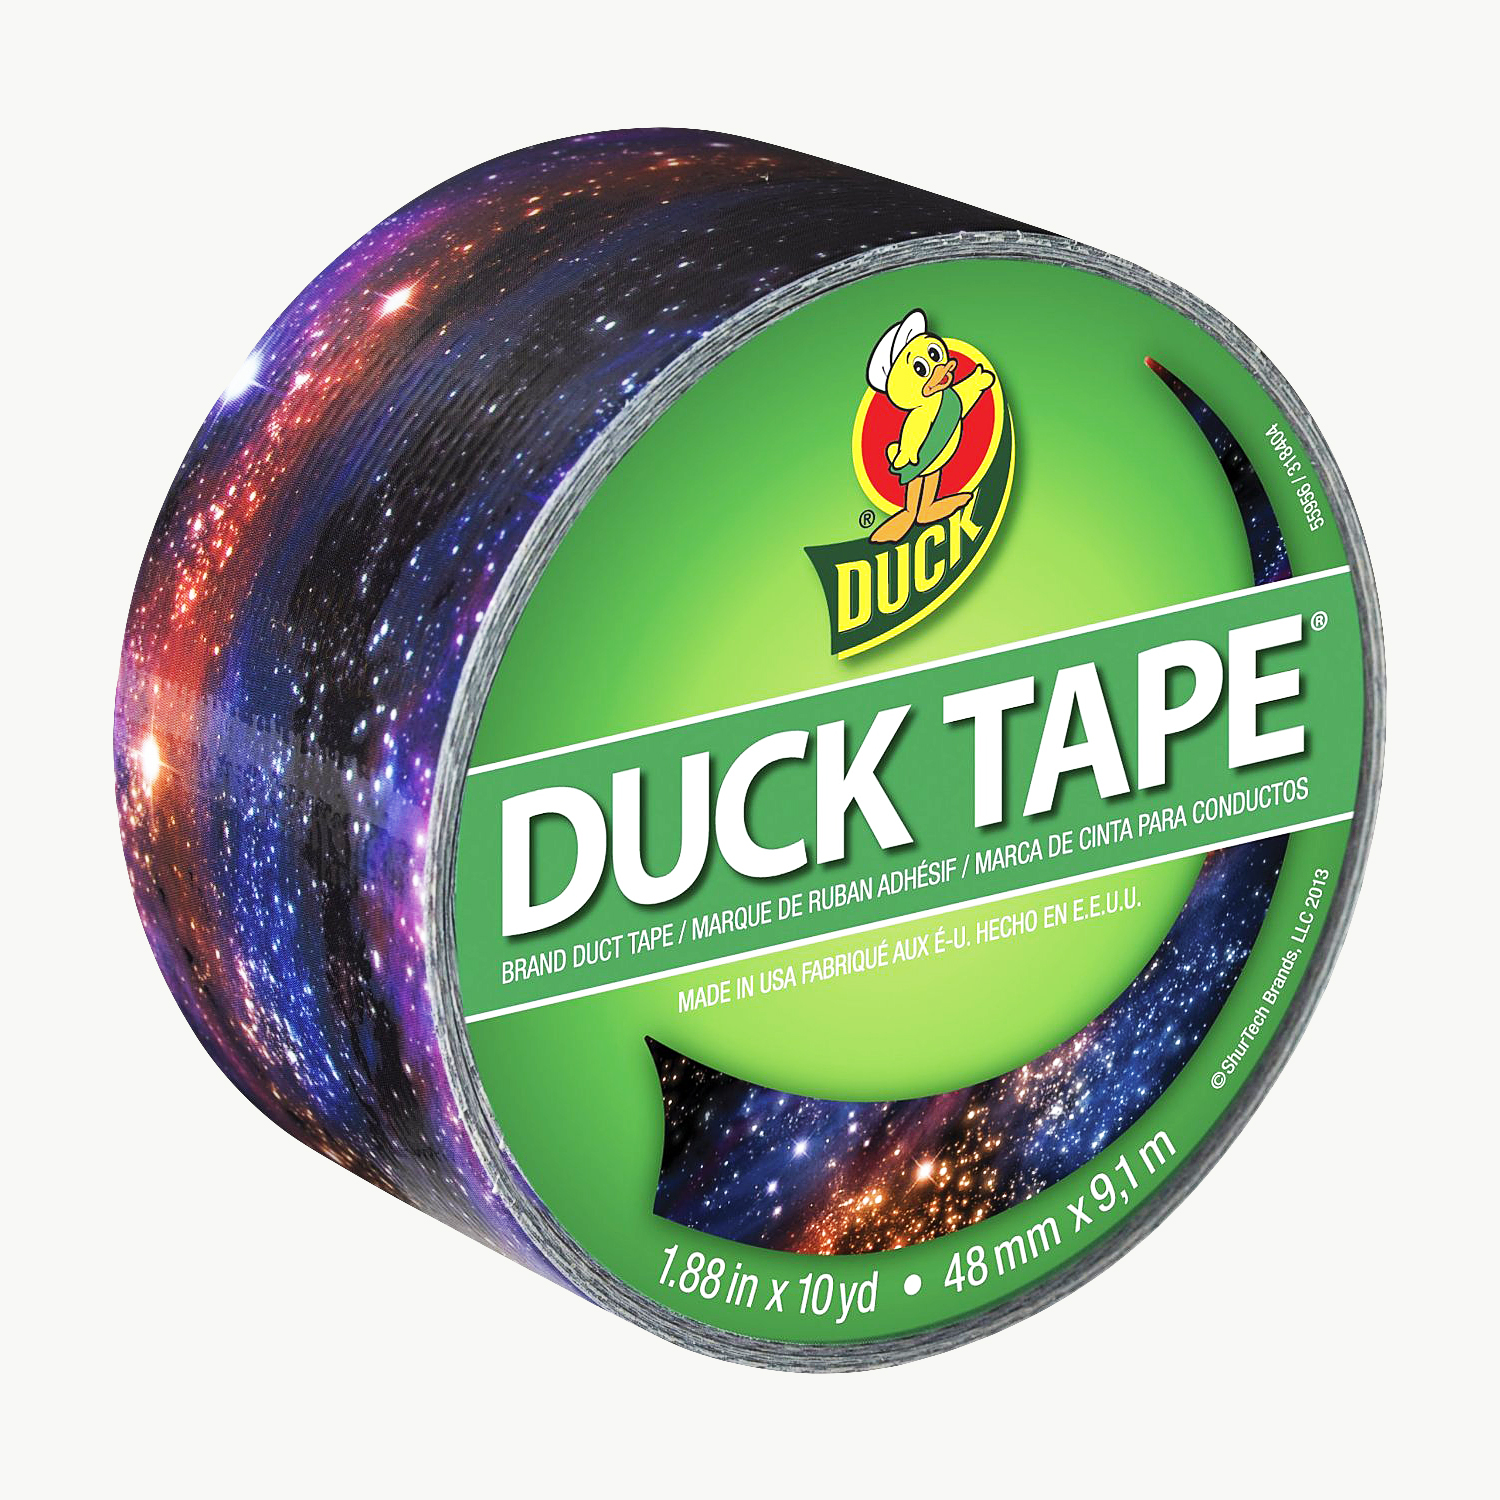 Duck Brand Printed Duck Duct Tape Patterns: 1.88 in. x 30 ft. (Galaxy)